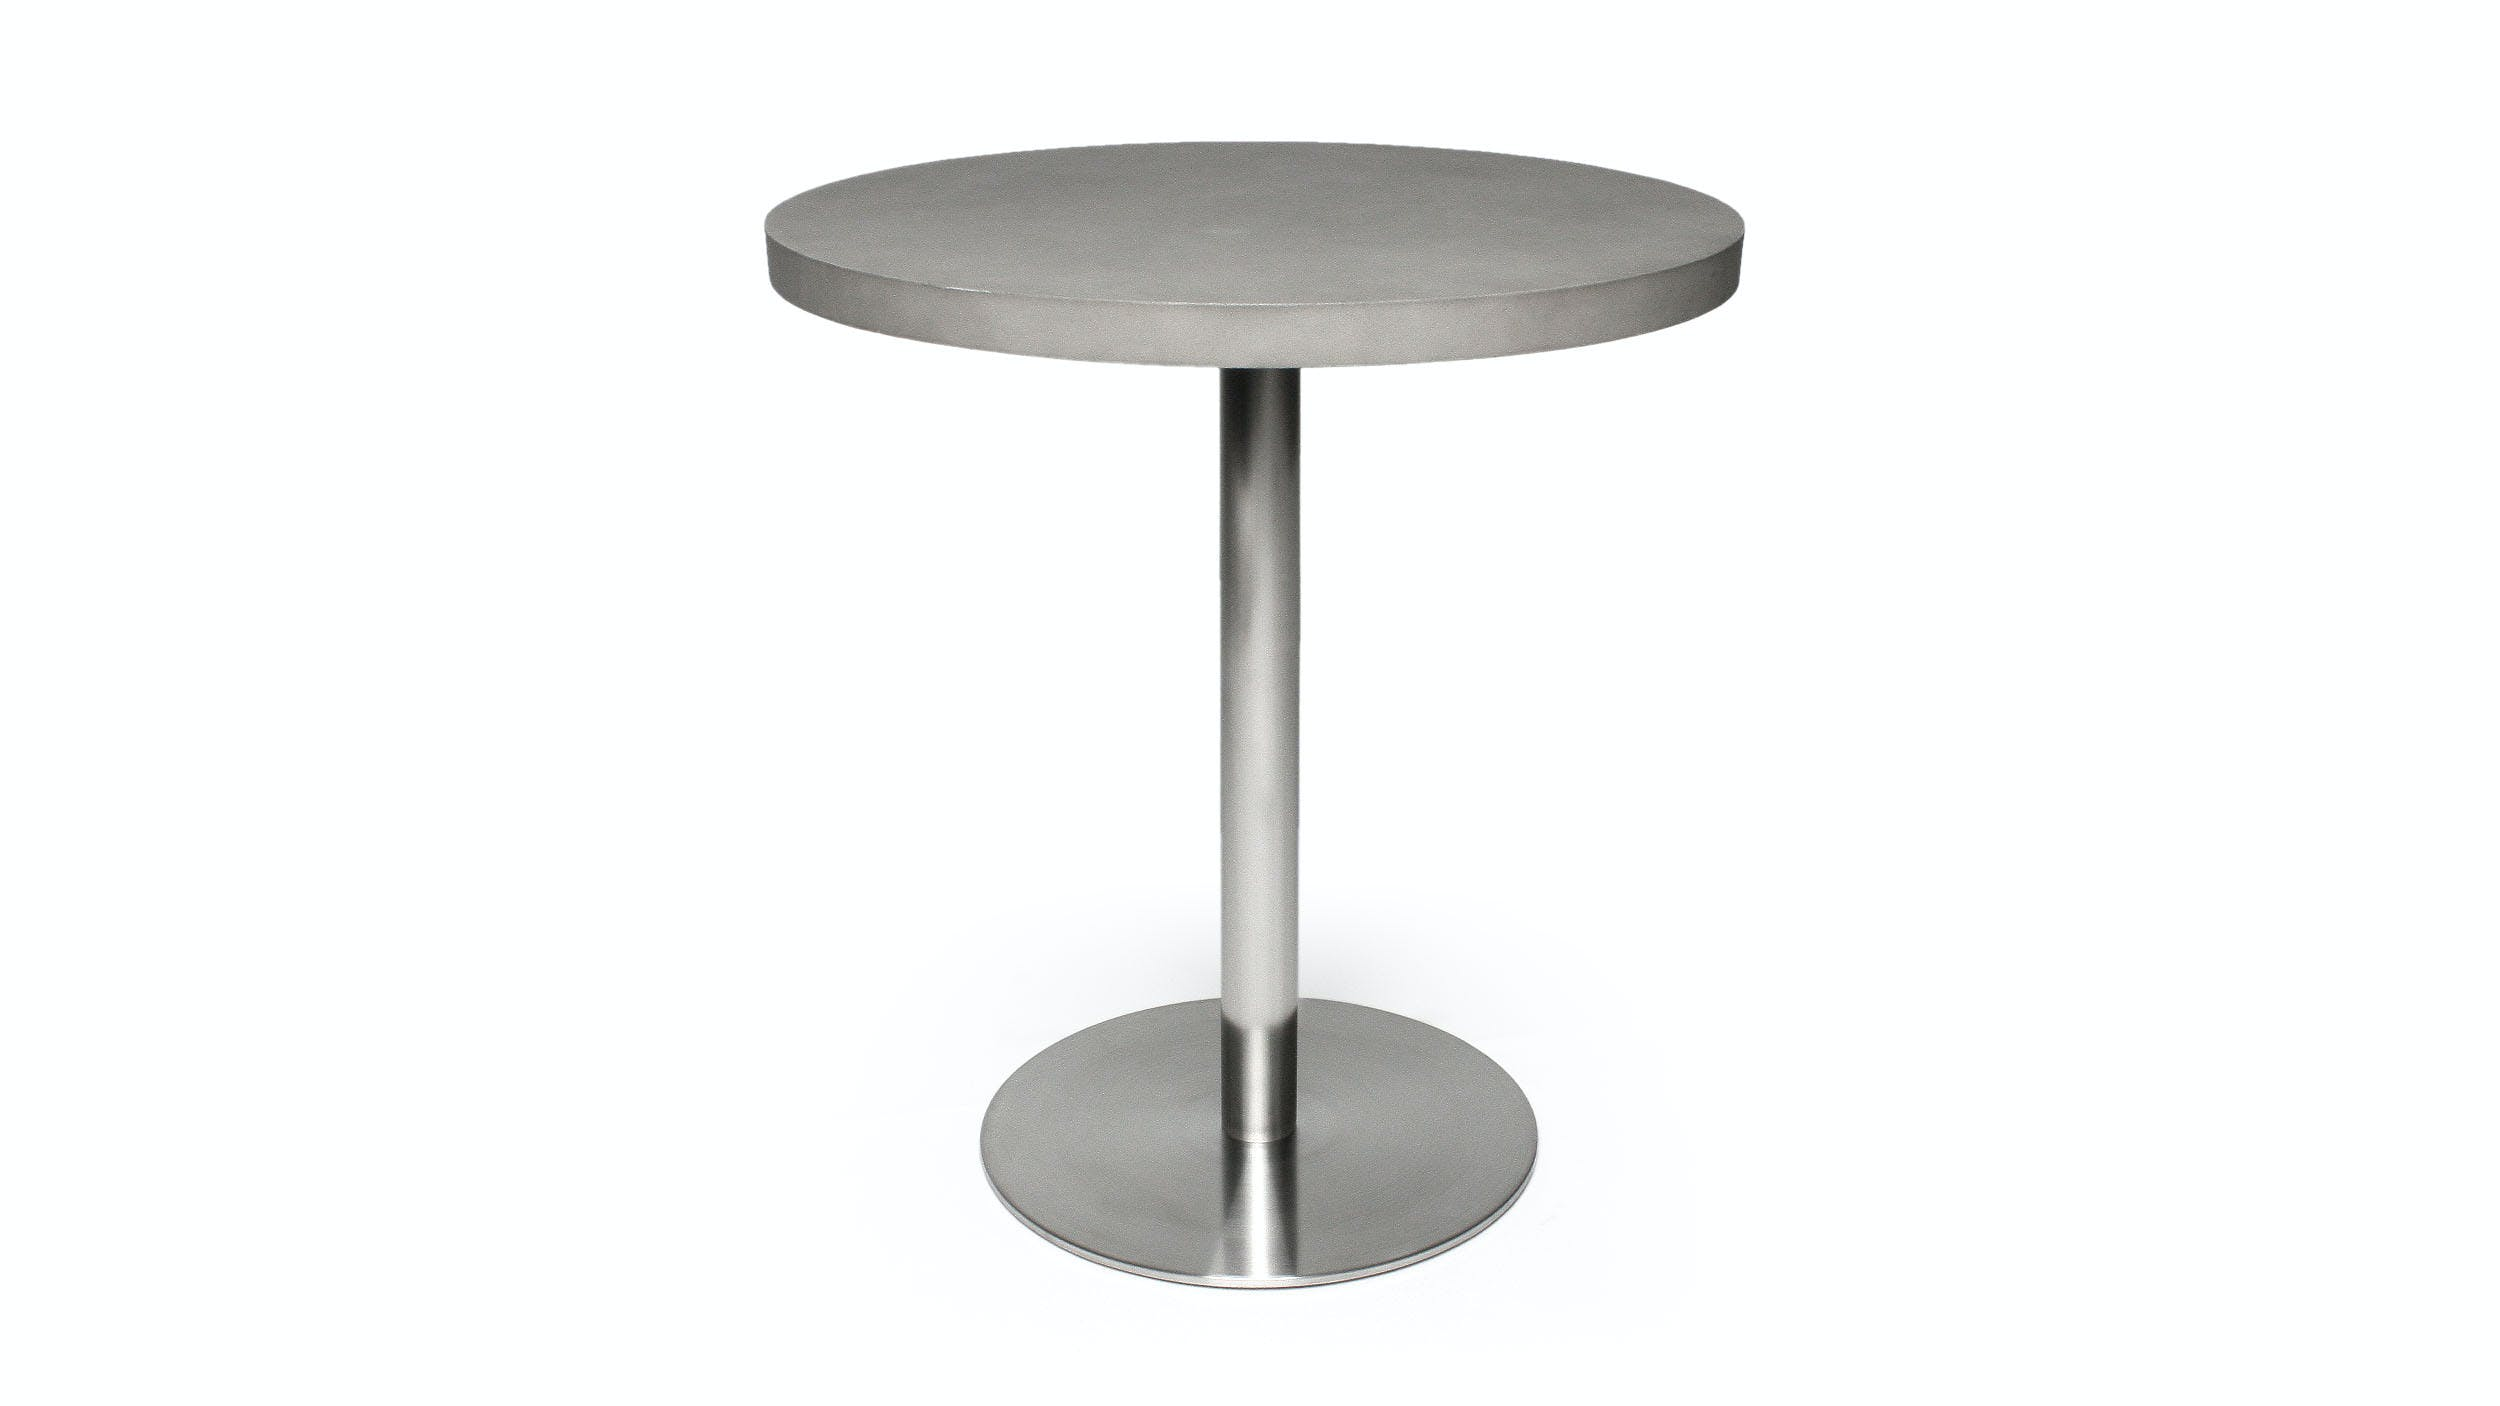 Dl 09071 Sl 105 1 Bistro Round Dining Table 00001